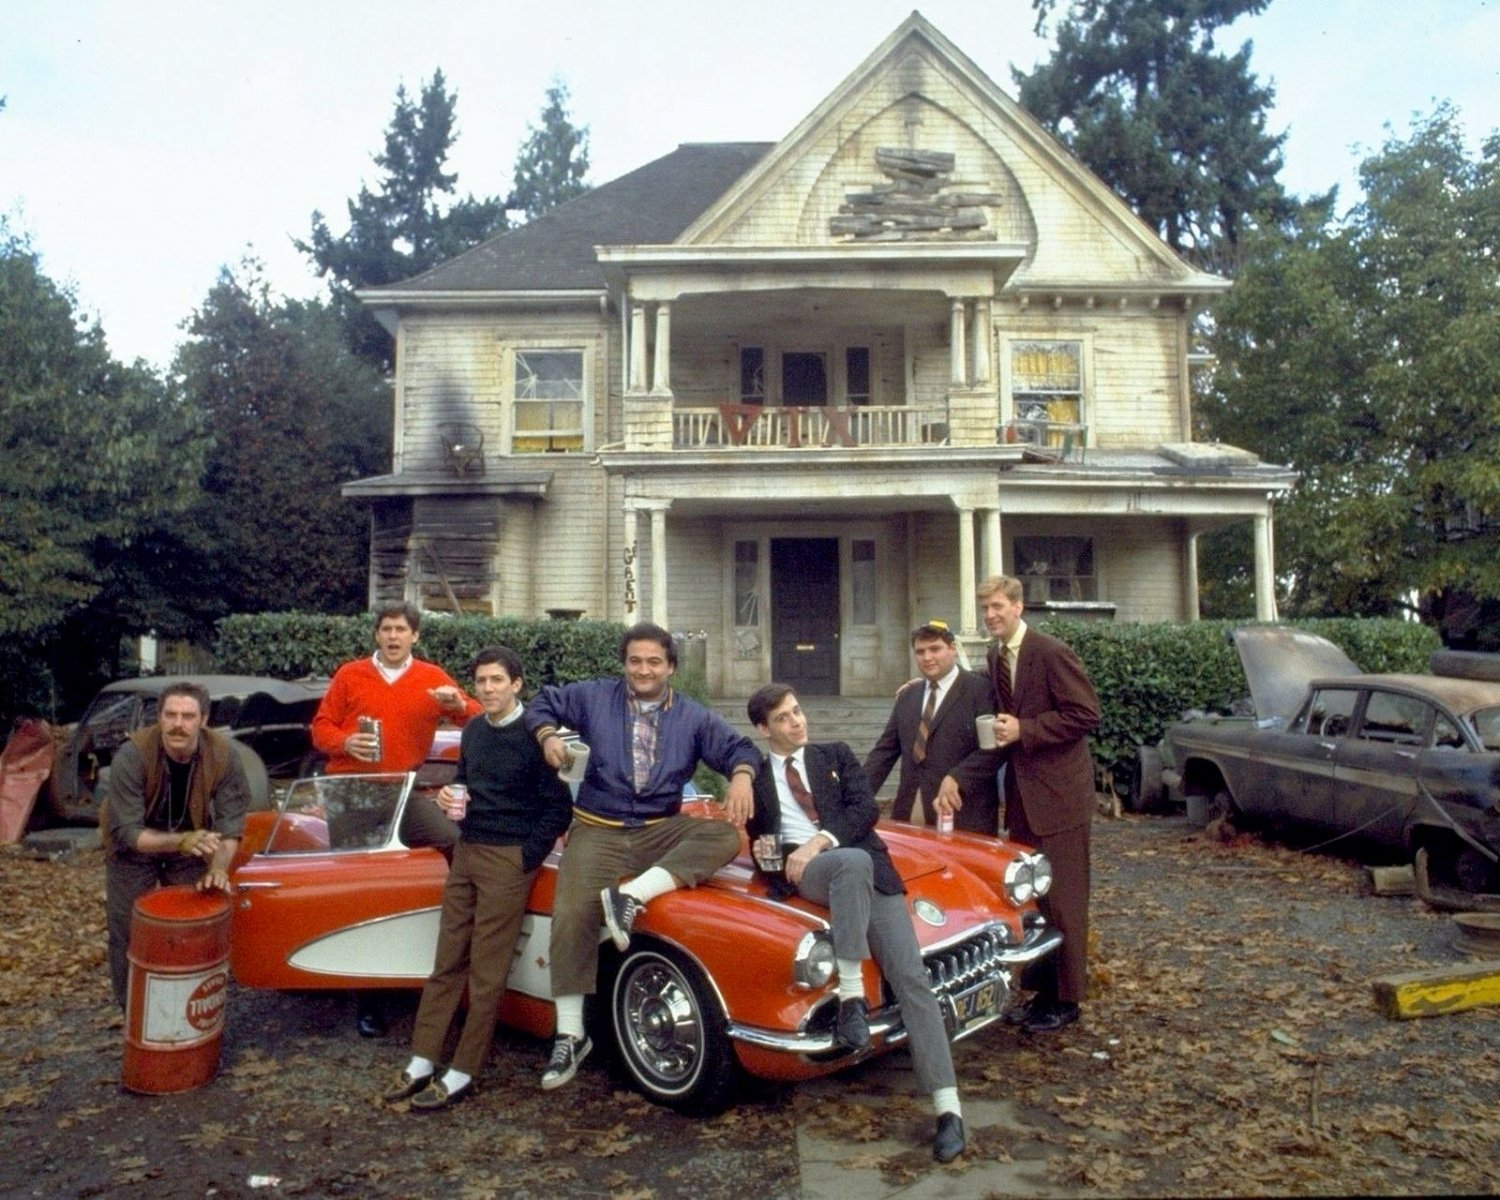 """CAST FROM THE 1978 FILM """"ANIMAL HOUSE"""" JOHN BELUSI 8X10 PUBLICITY PHOTO (ZY-476)"""